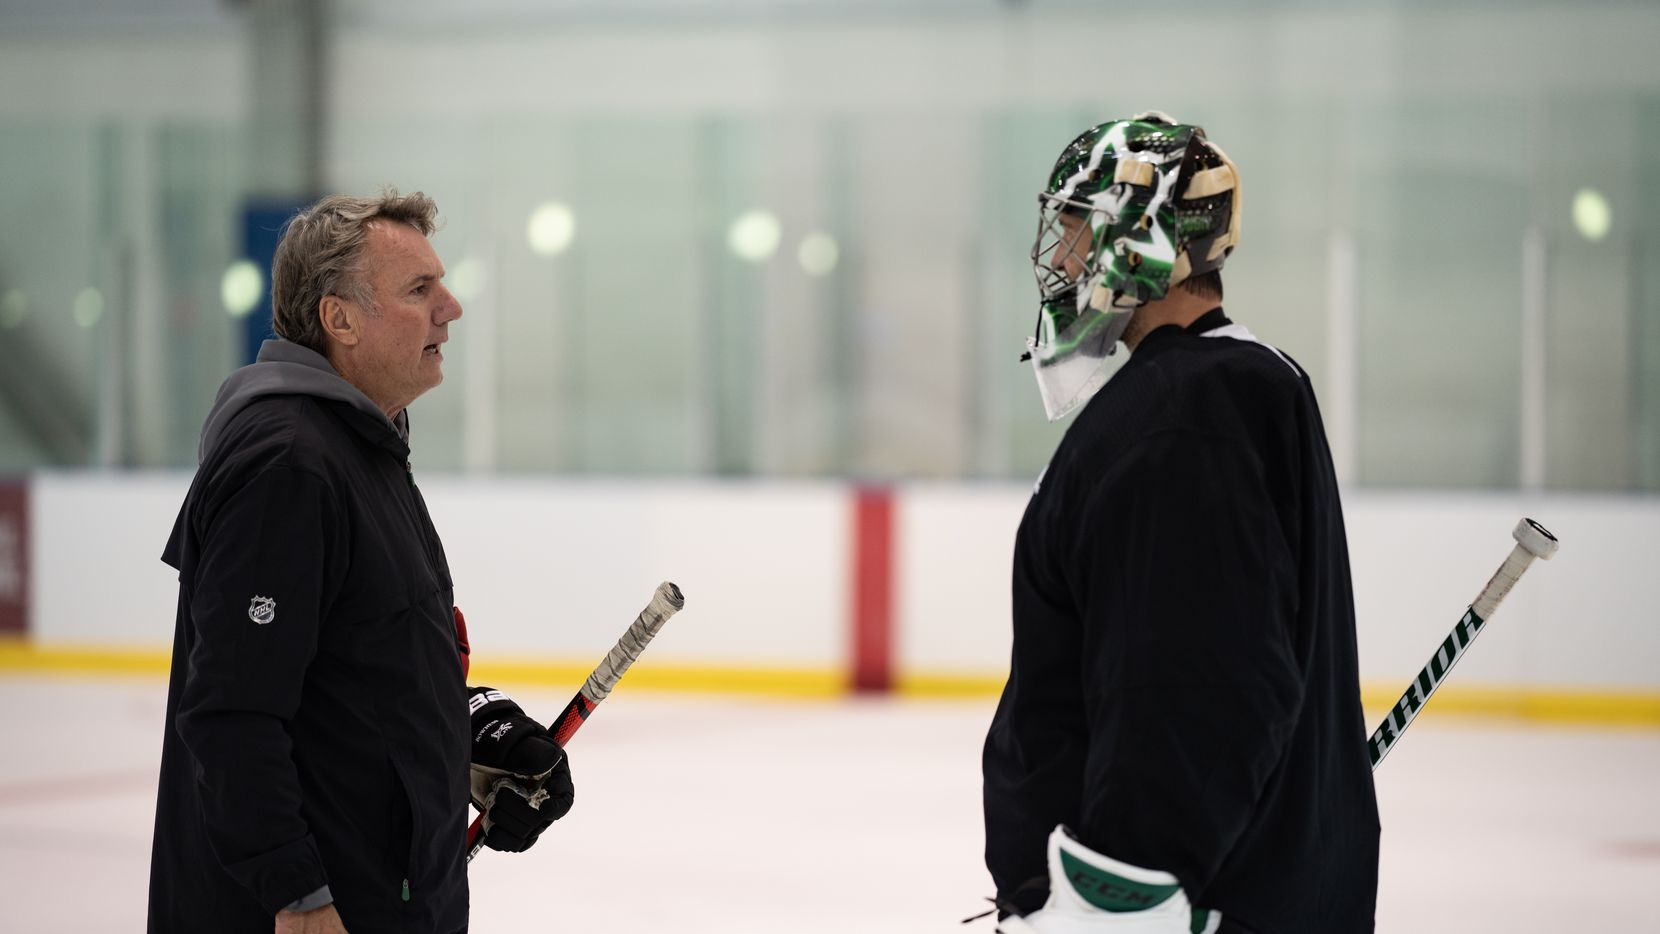 Dallas Stars interim head coach Rick Bowness talks with goalie Ben Bishop as the Dallas Stars work out in their 'bubble' in Edmonton, in Alberta, Canada, on July 28, 2020.